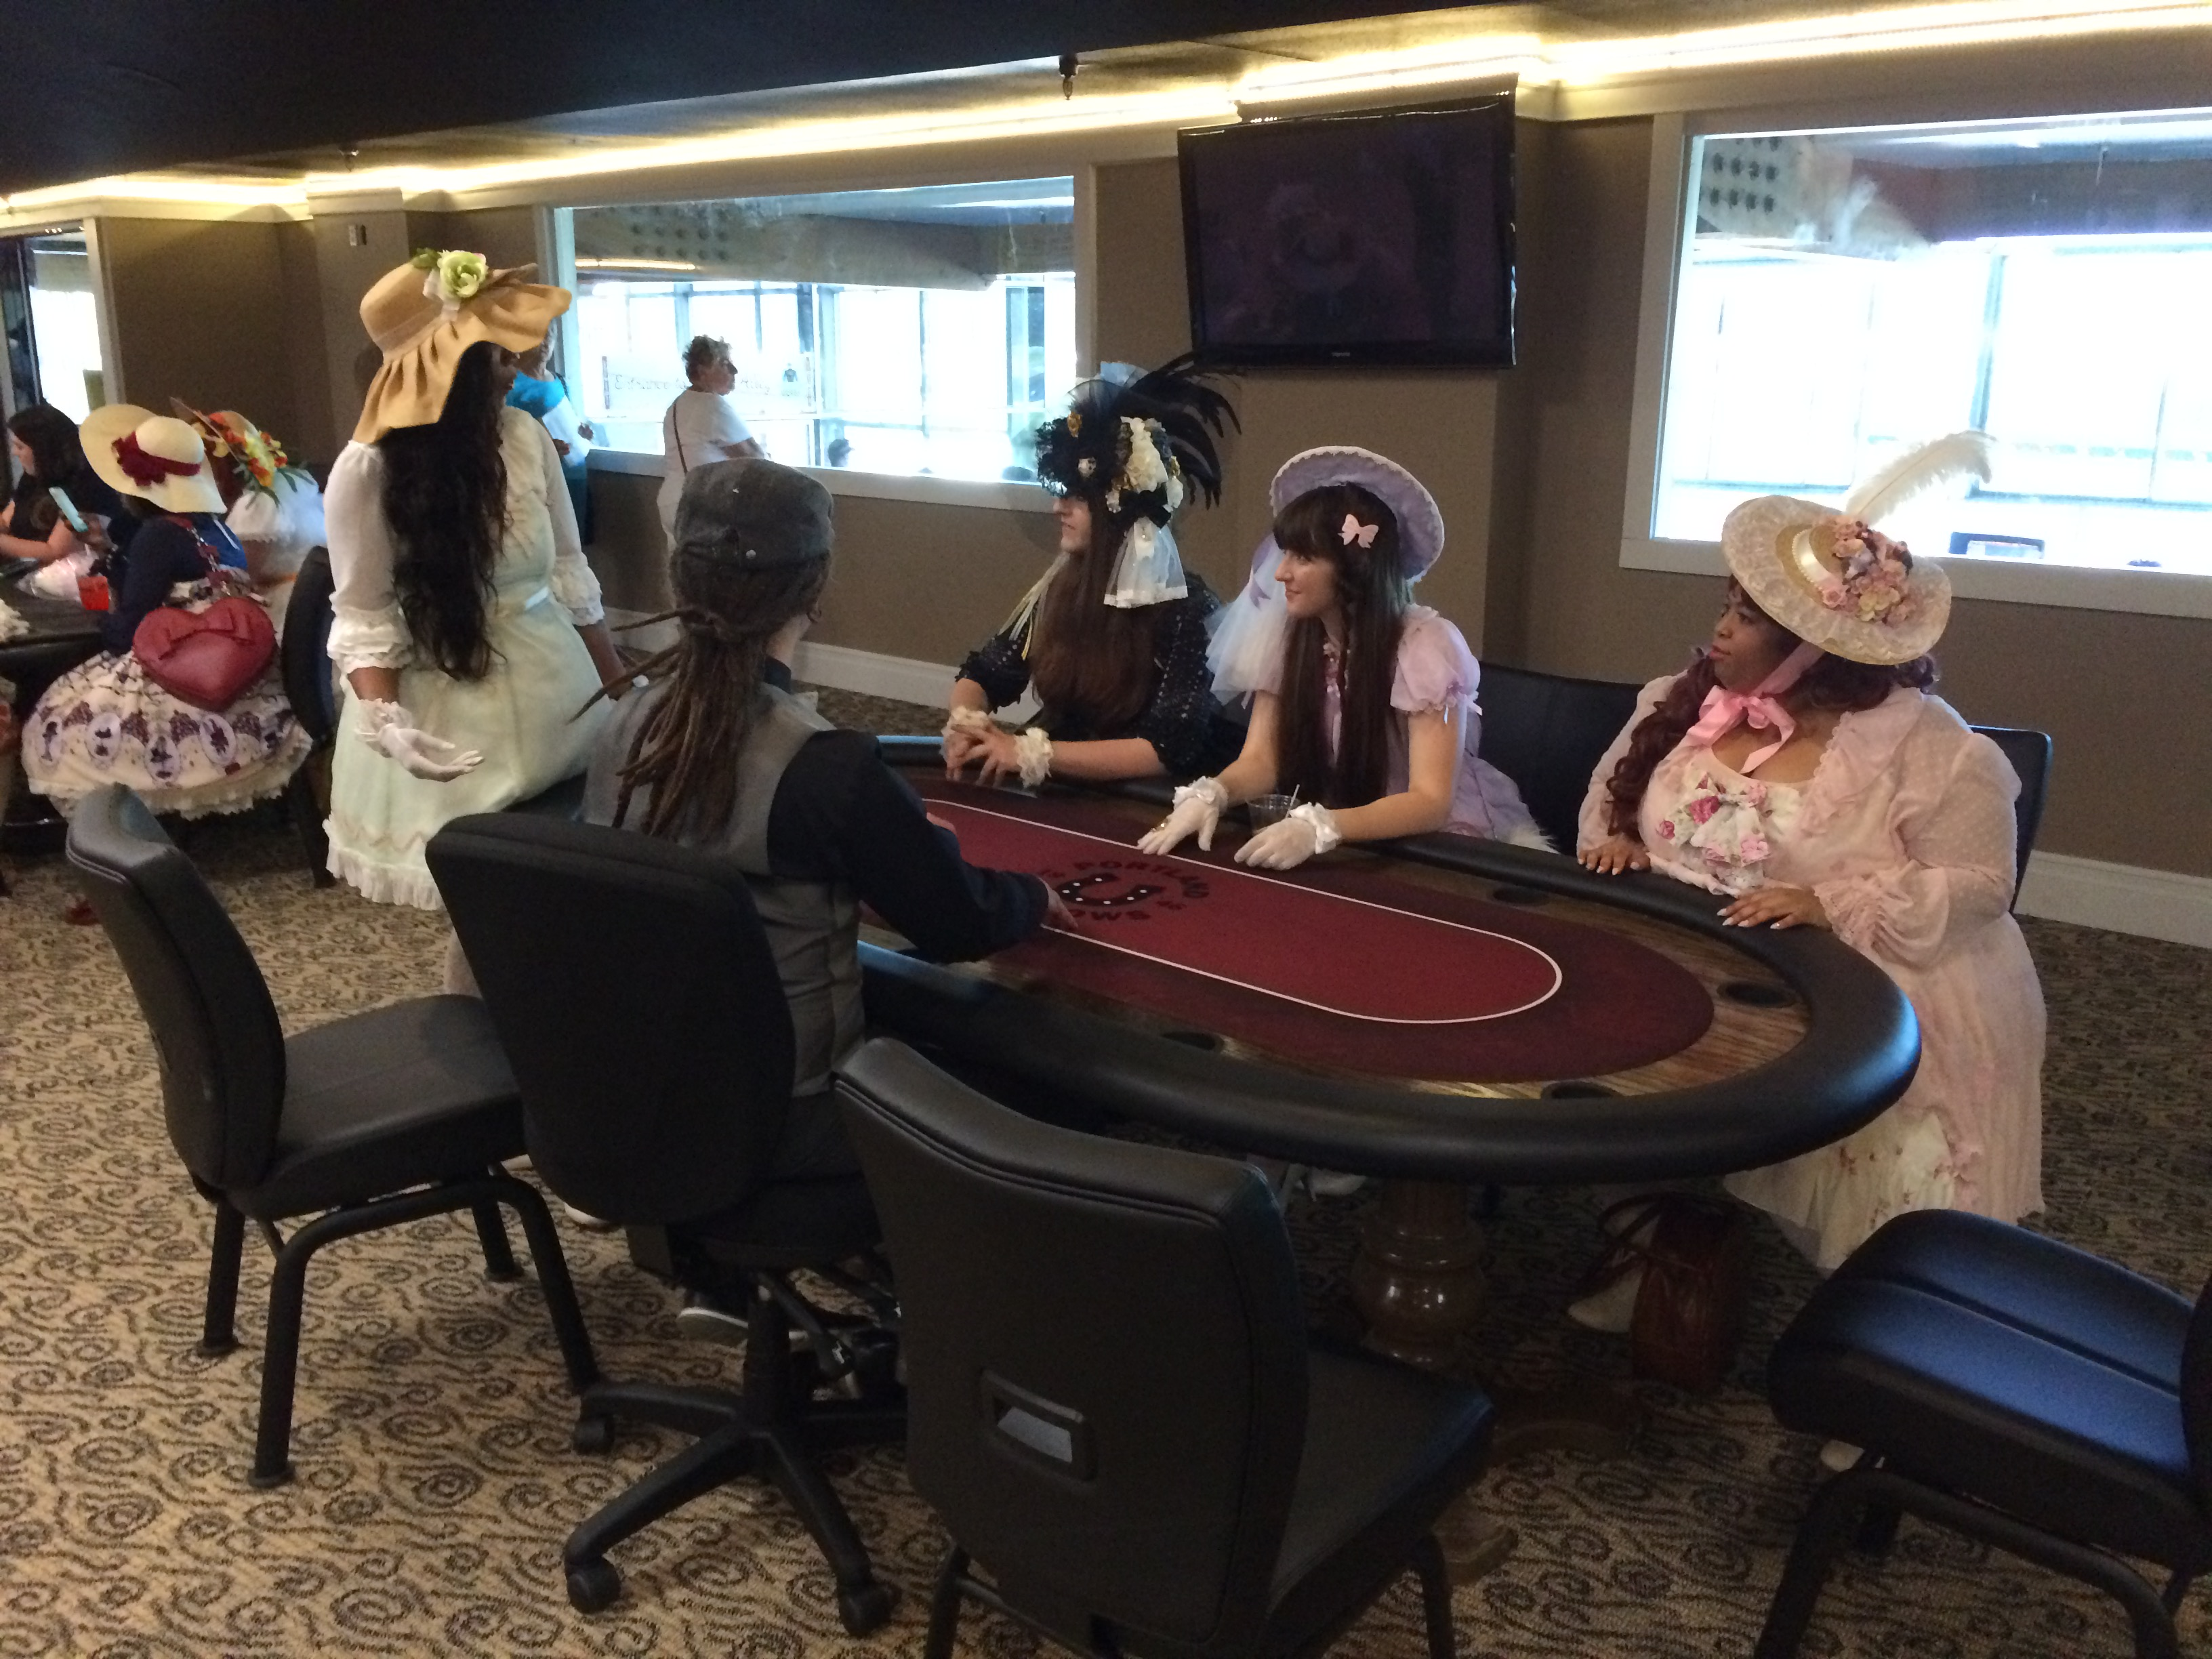 Meadows poker room portland white horse casino hotel